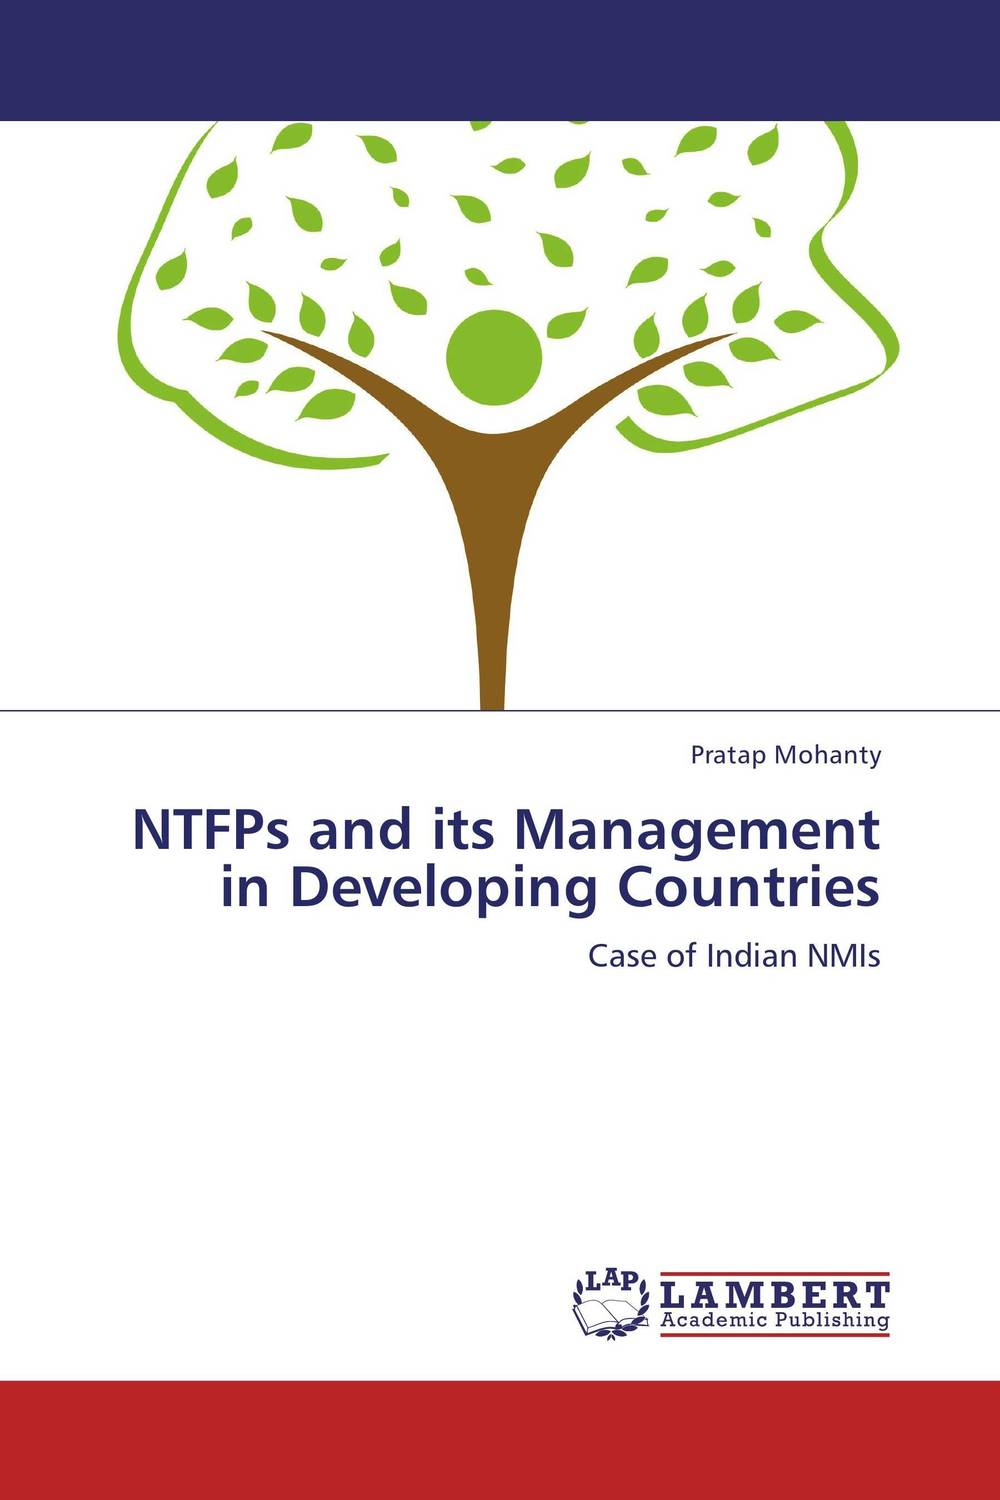 NTFPs and its Management in Developing Countries ahmed mohammed non timber forest products and food security